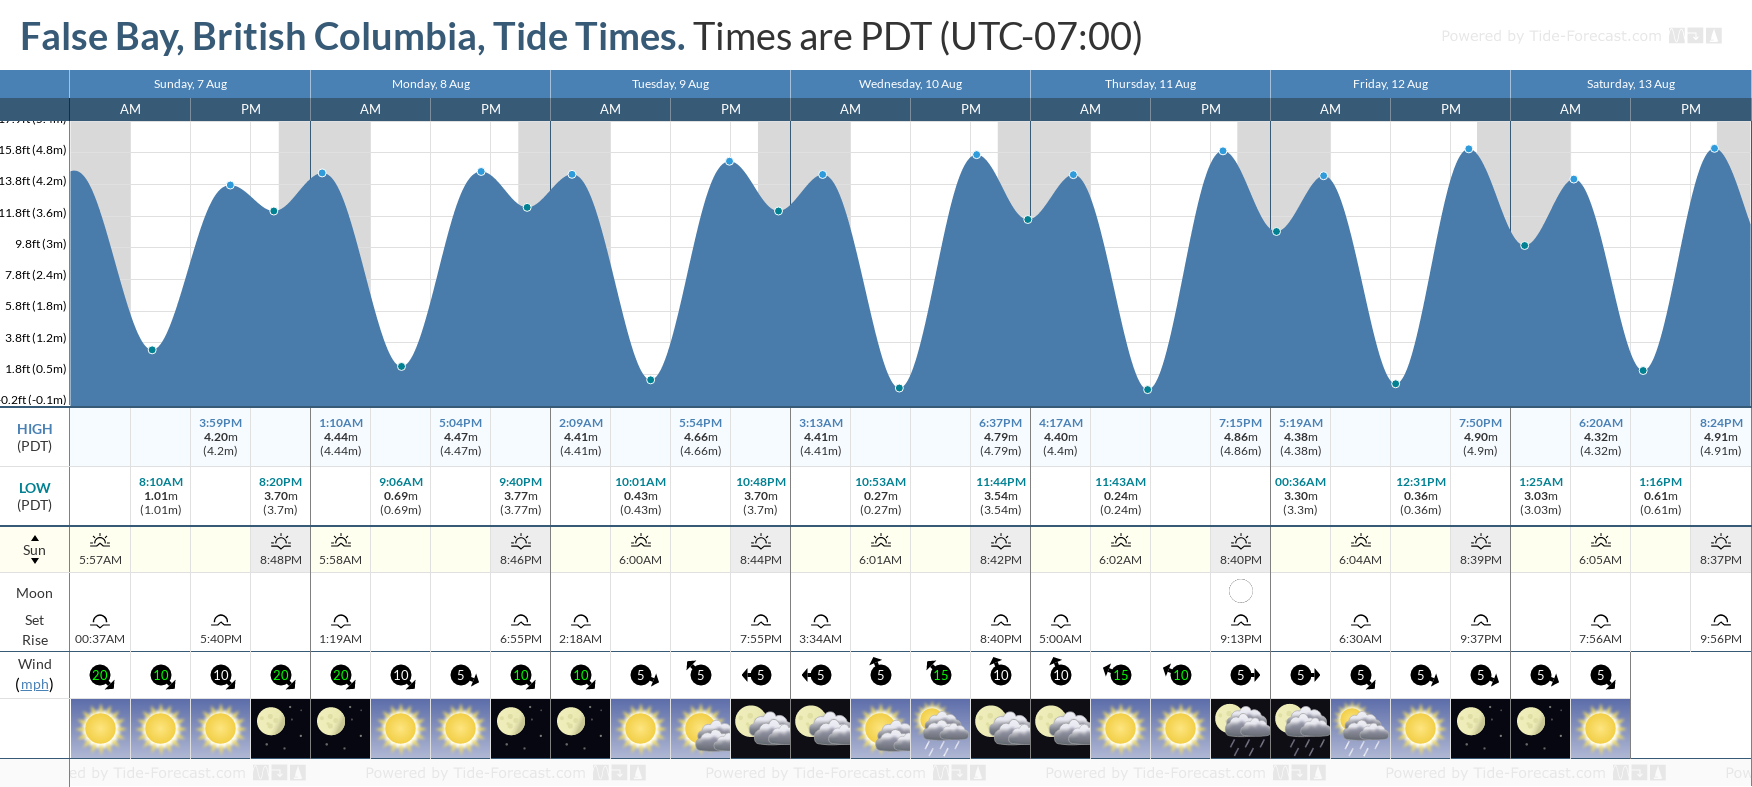 False Bay, British Columbia Tide Chart including high and low tide tide times for the next 7 days